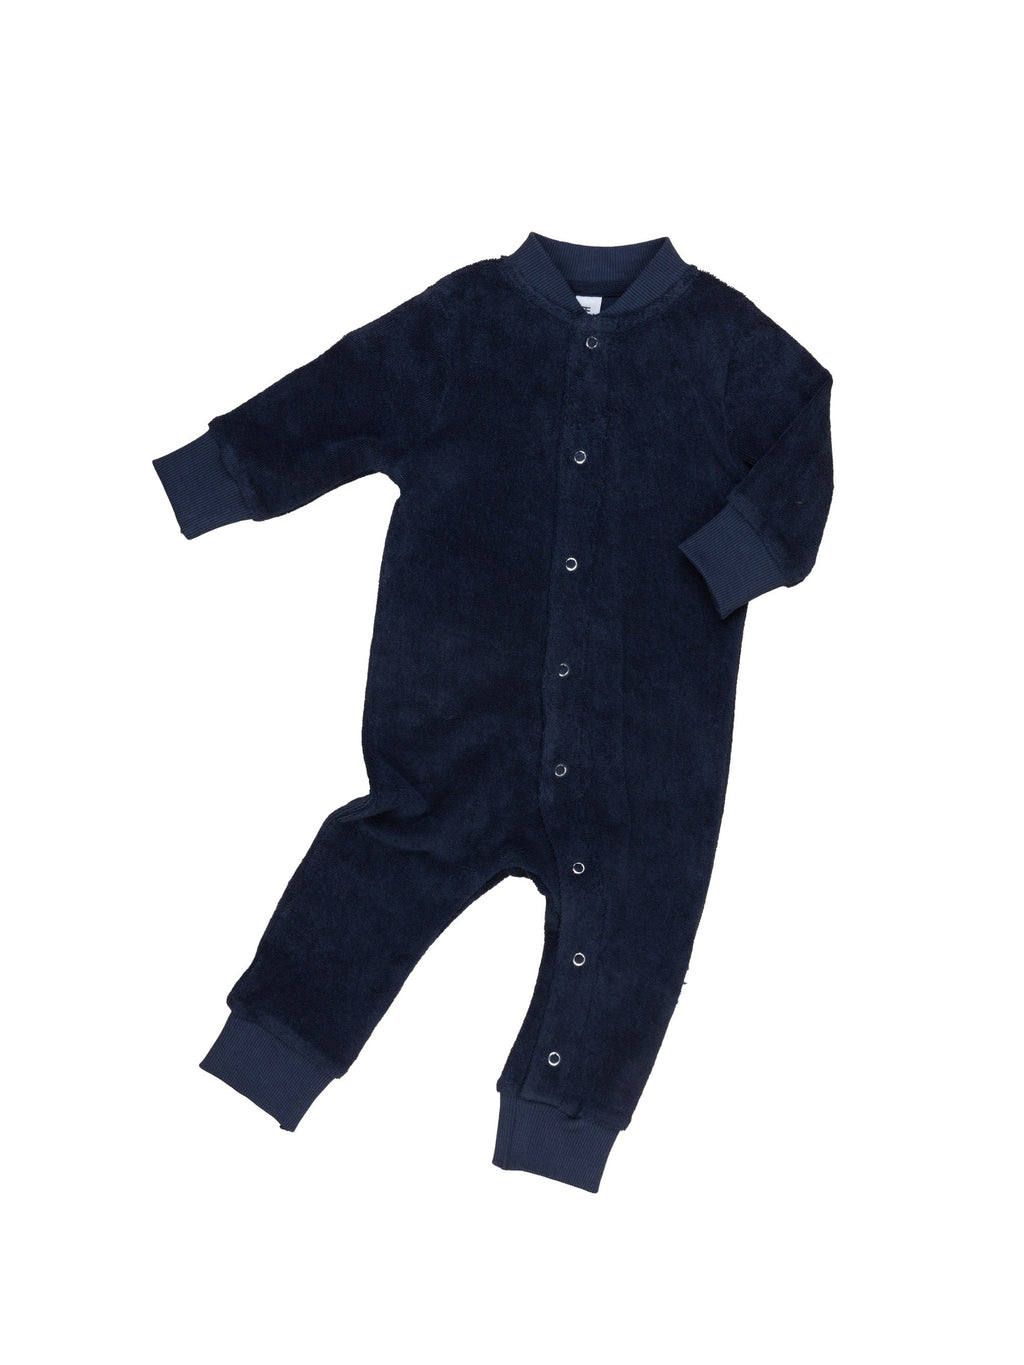 Huxbaby Midnight Terry Romper - HB1939